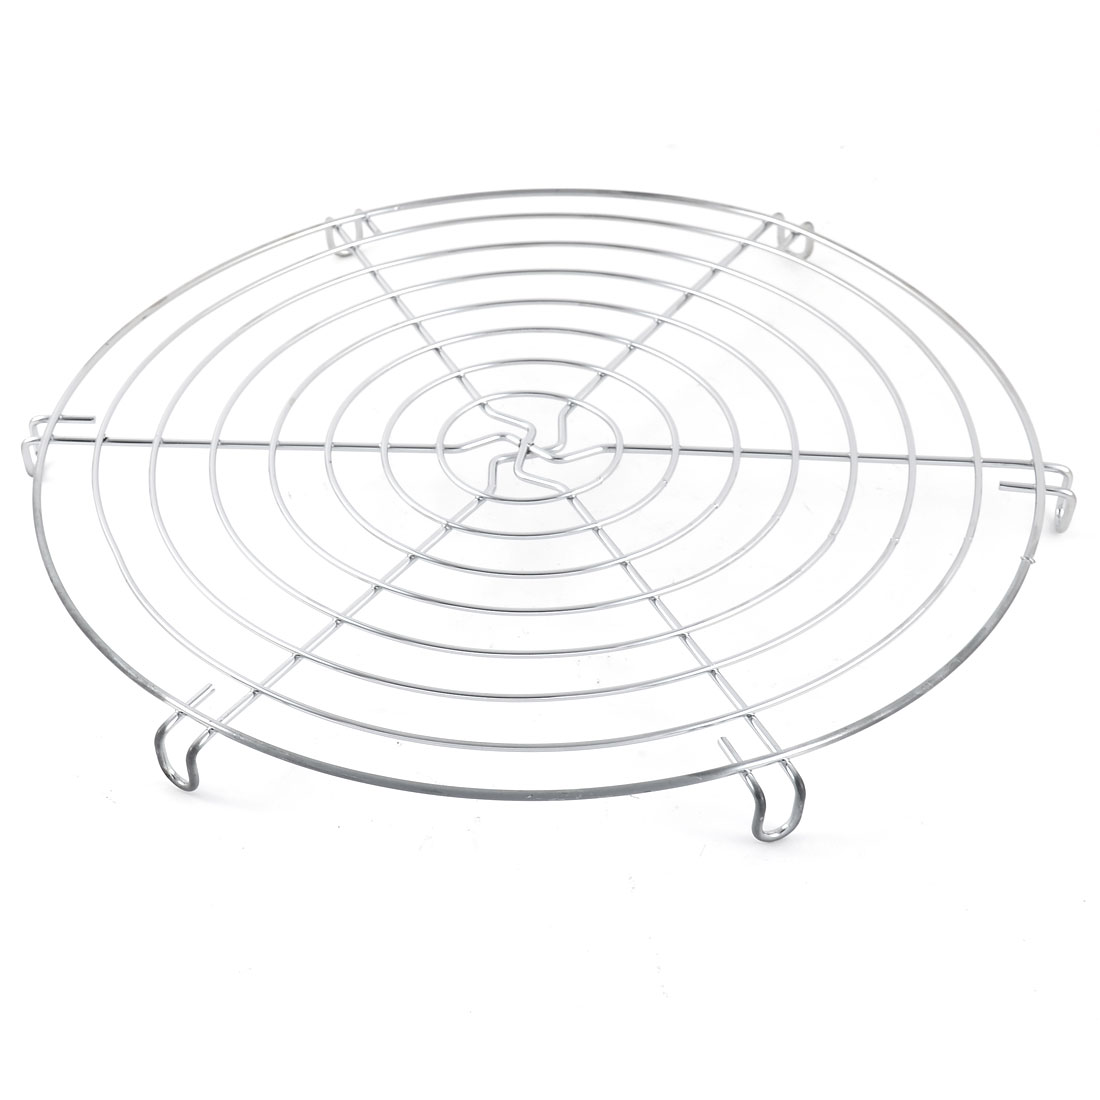 Stainless Steel Round Shape Cake Fondant Muffin Cookie Pancake Cooling Rack 30cm